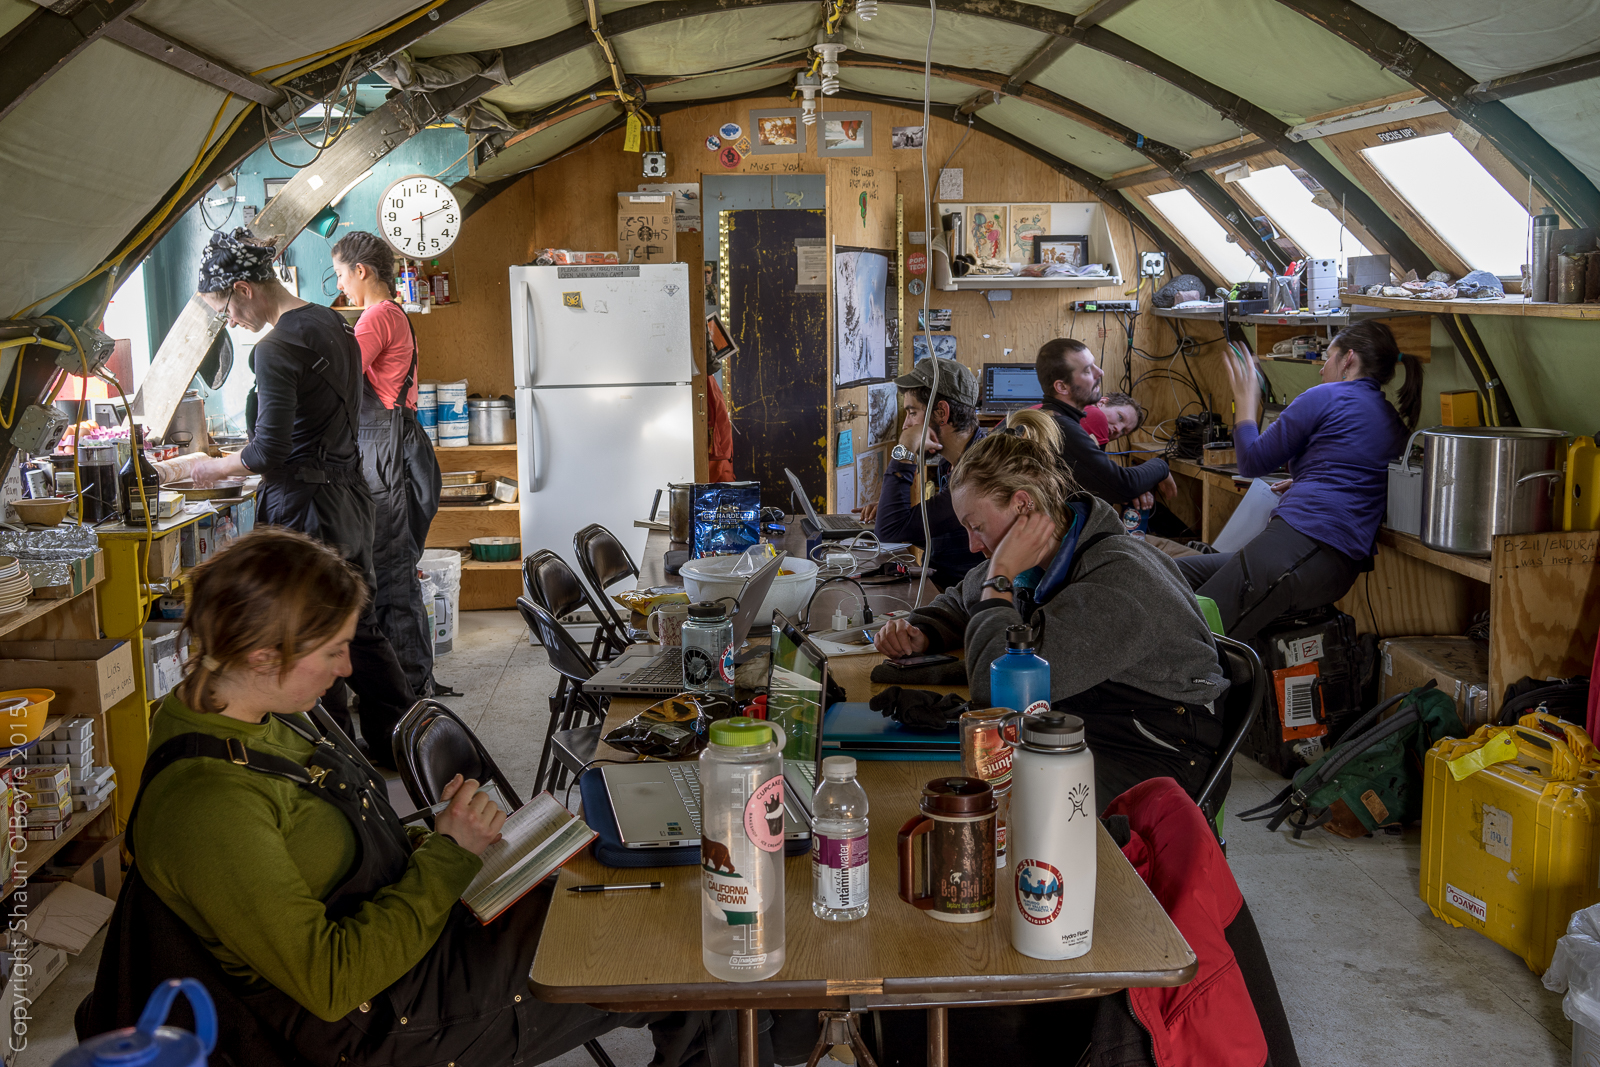 A crowded Jamesway building, used for cooking, dining, work and social space. Scientists and graduate students are working here on the LTER (long term ecological research) project.